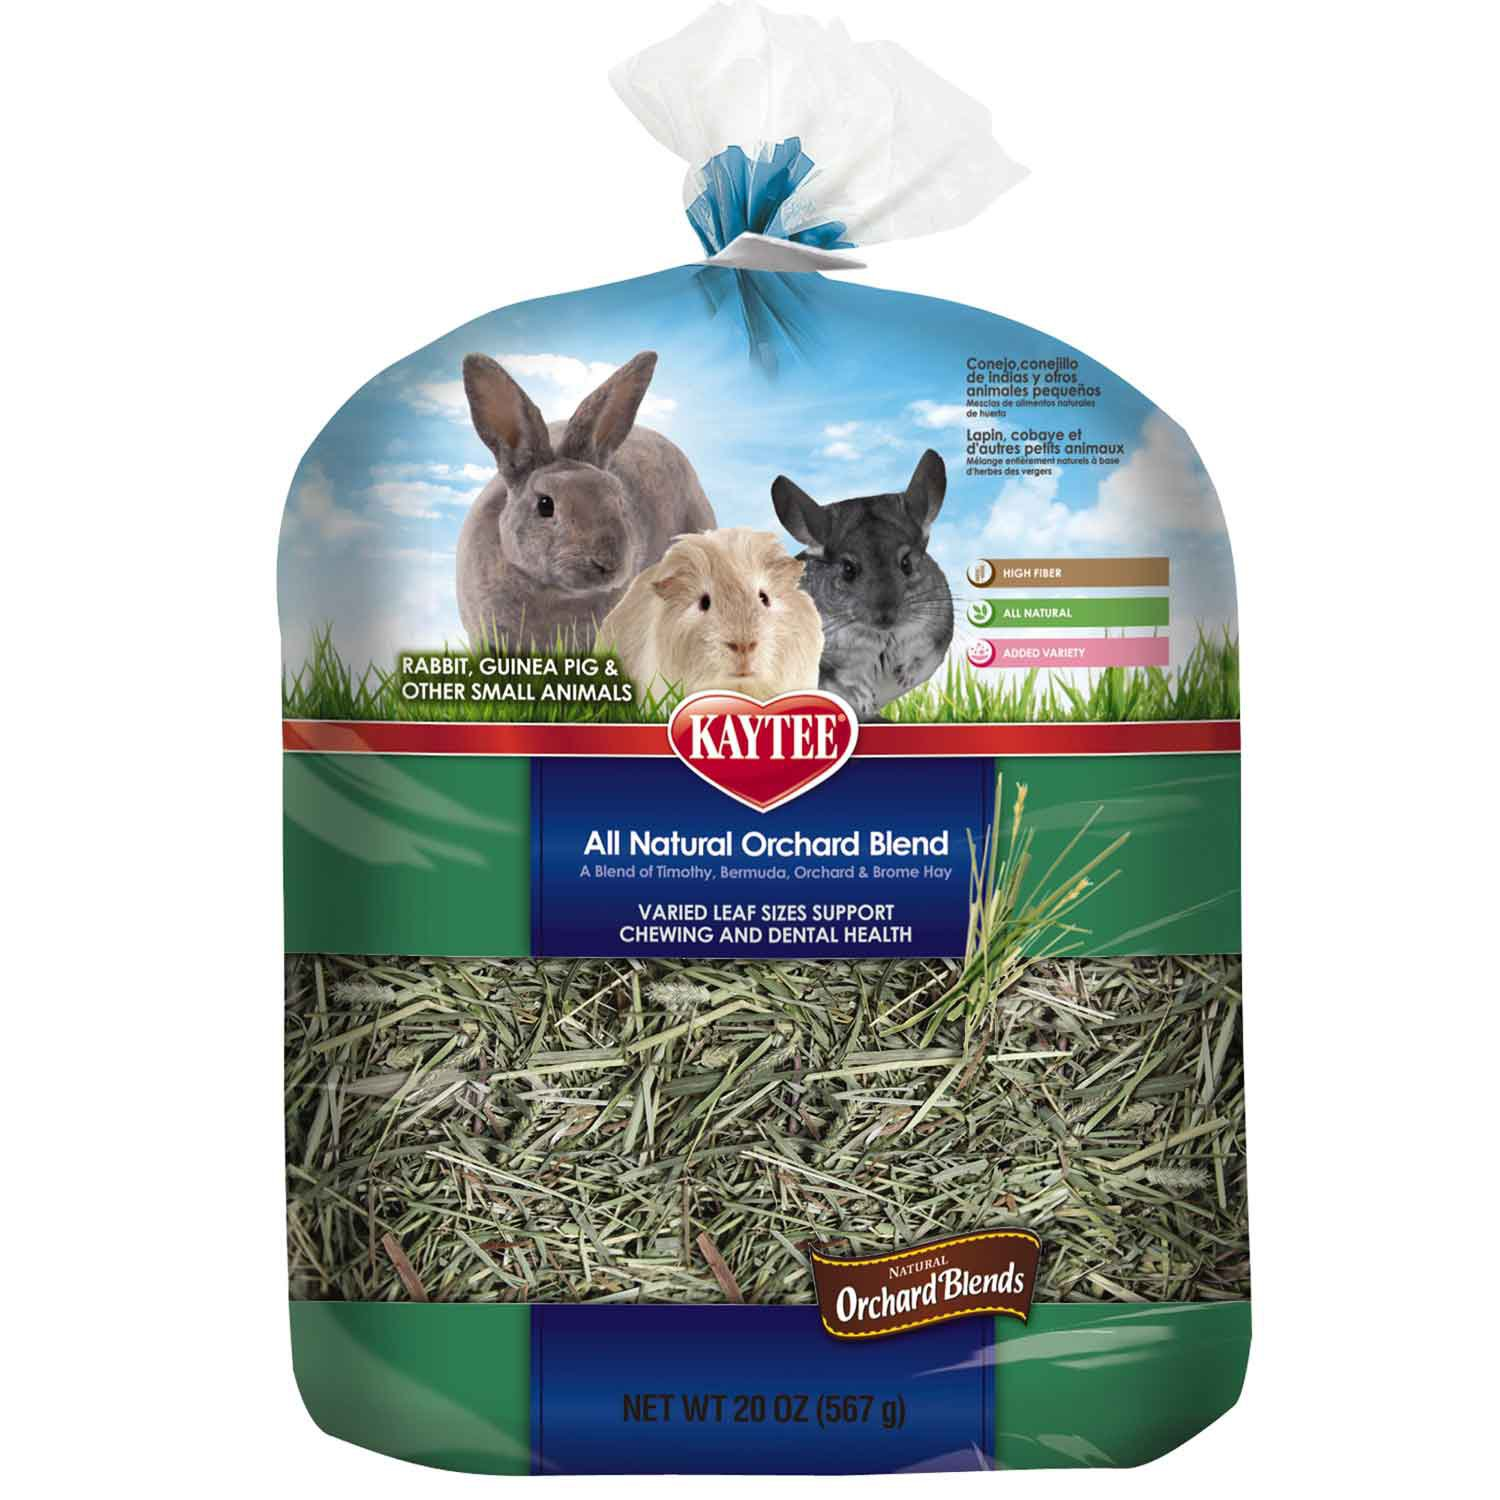 Kaytee All Natural Orchard Blends Dental Hay for Small Animals